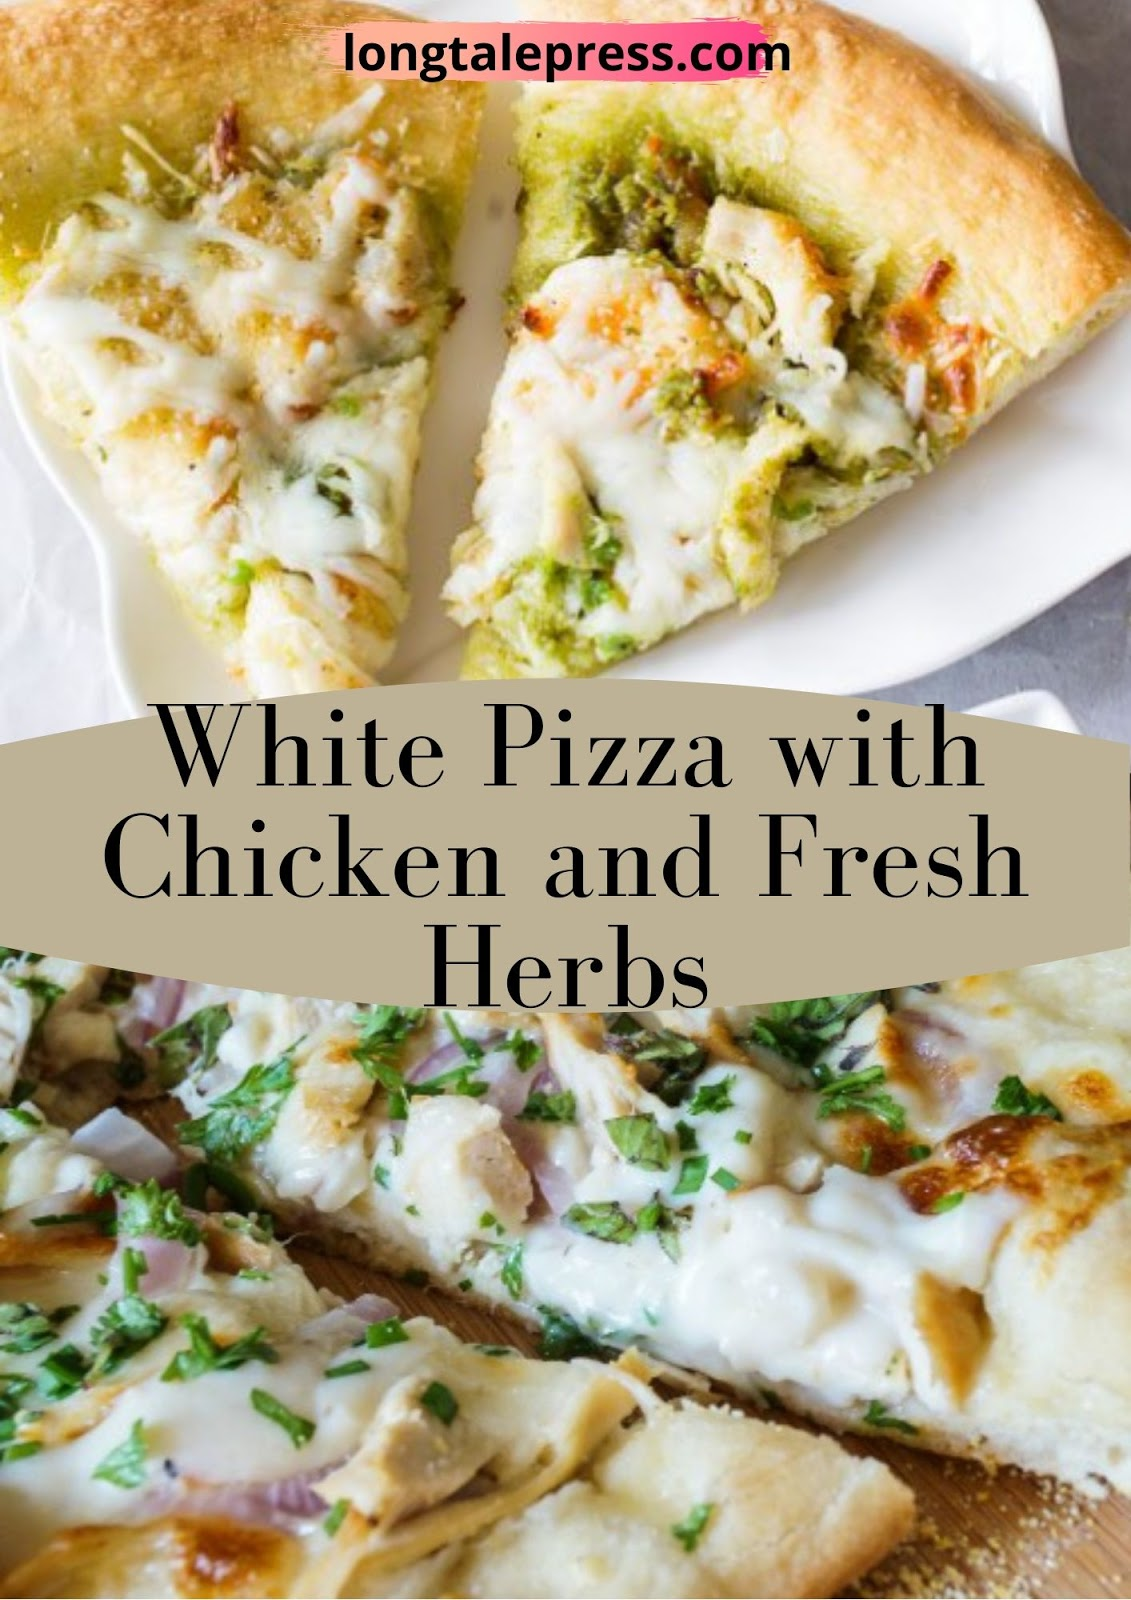 White Pizza with Chicken and Fresh Herbs